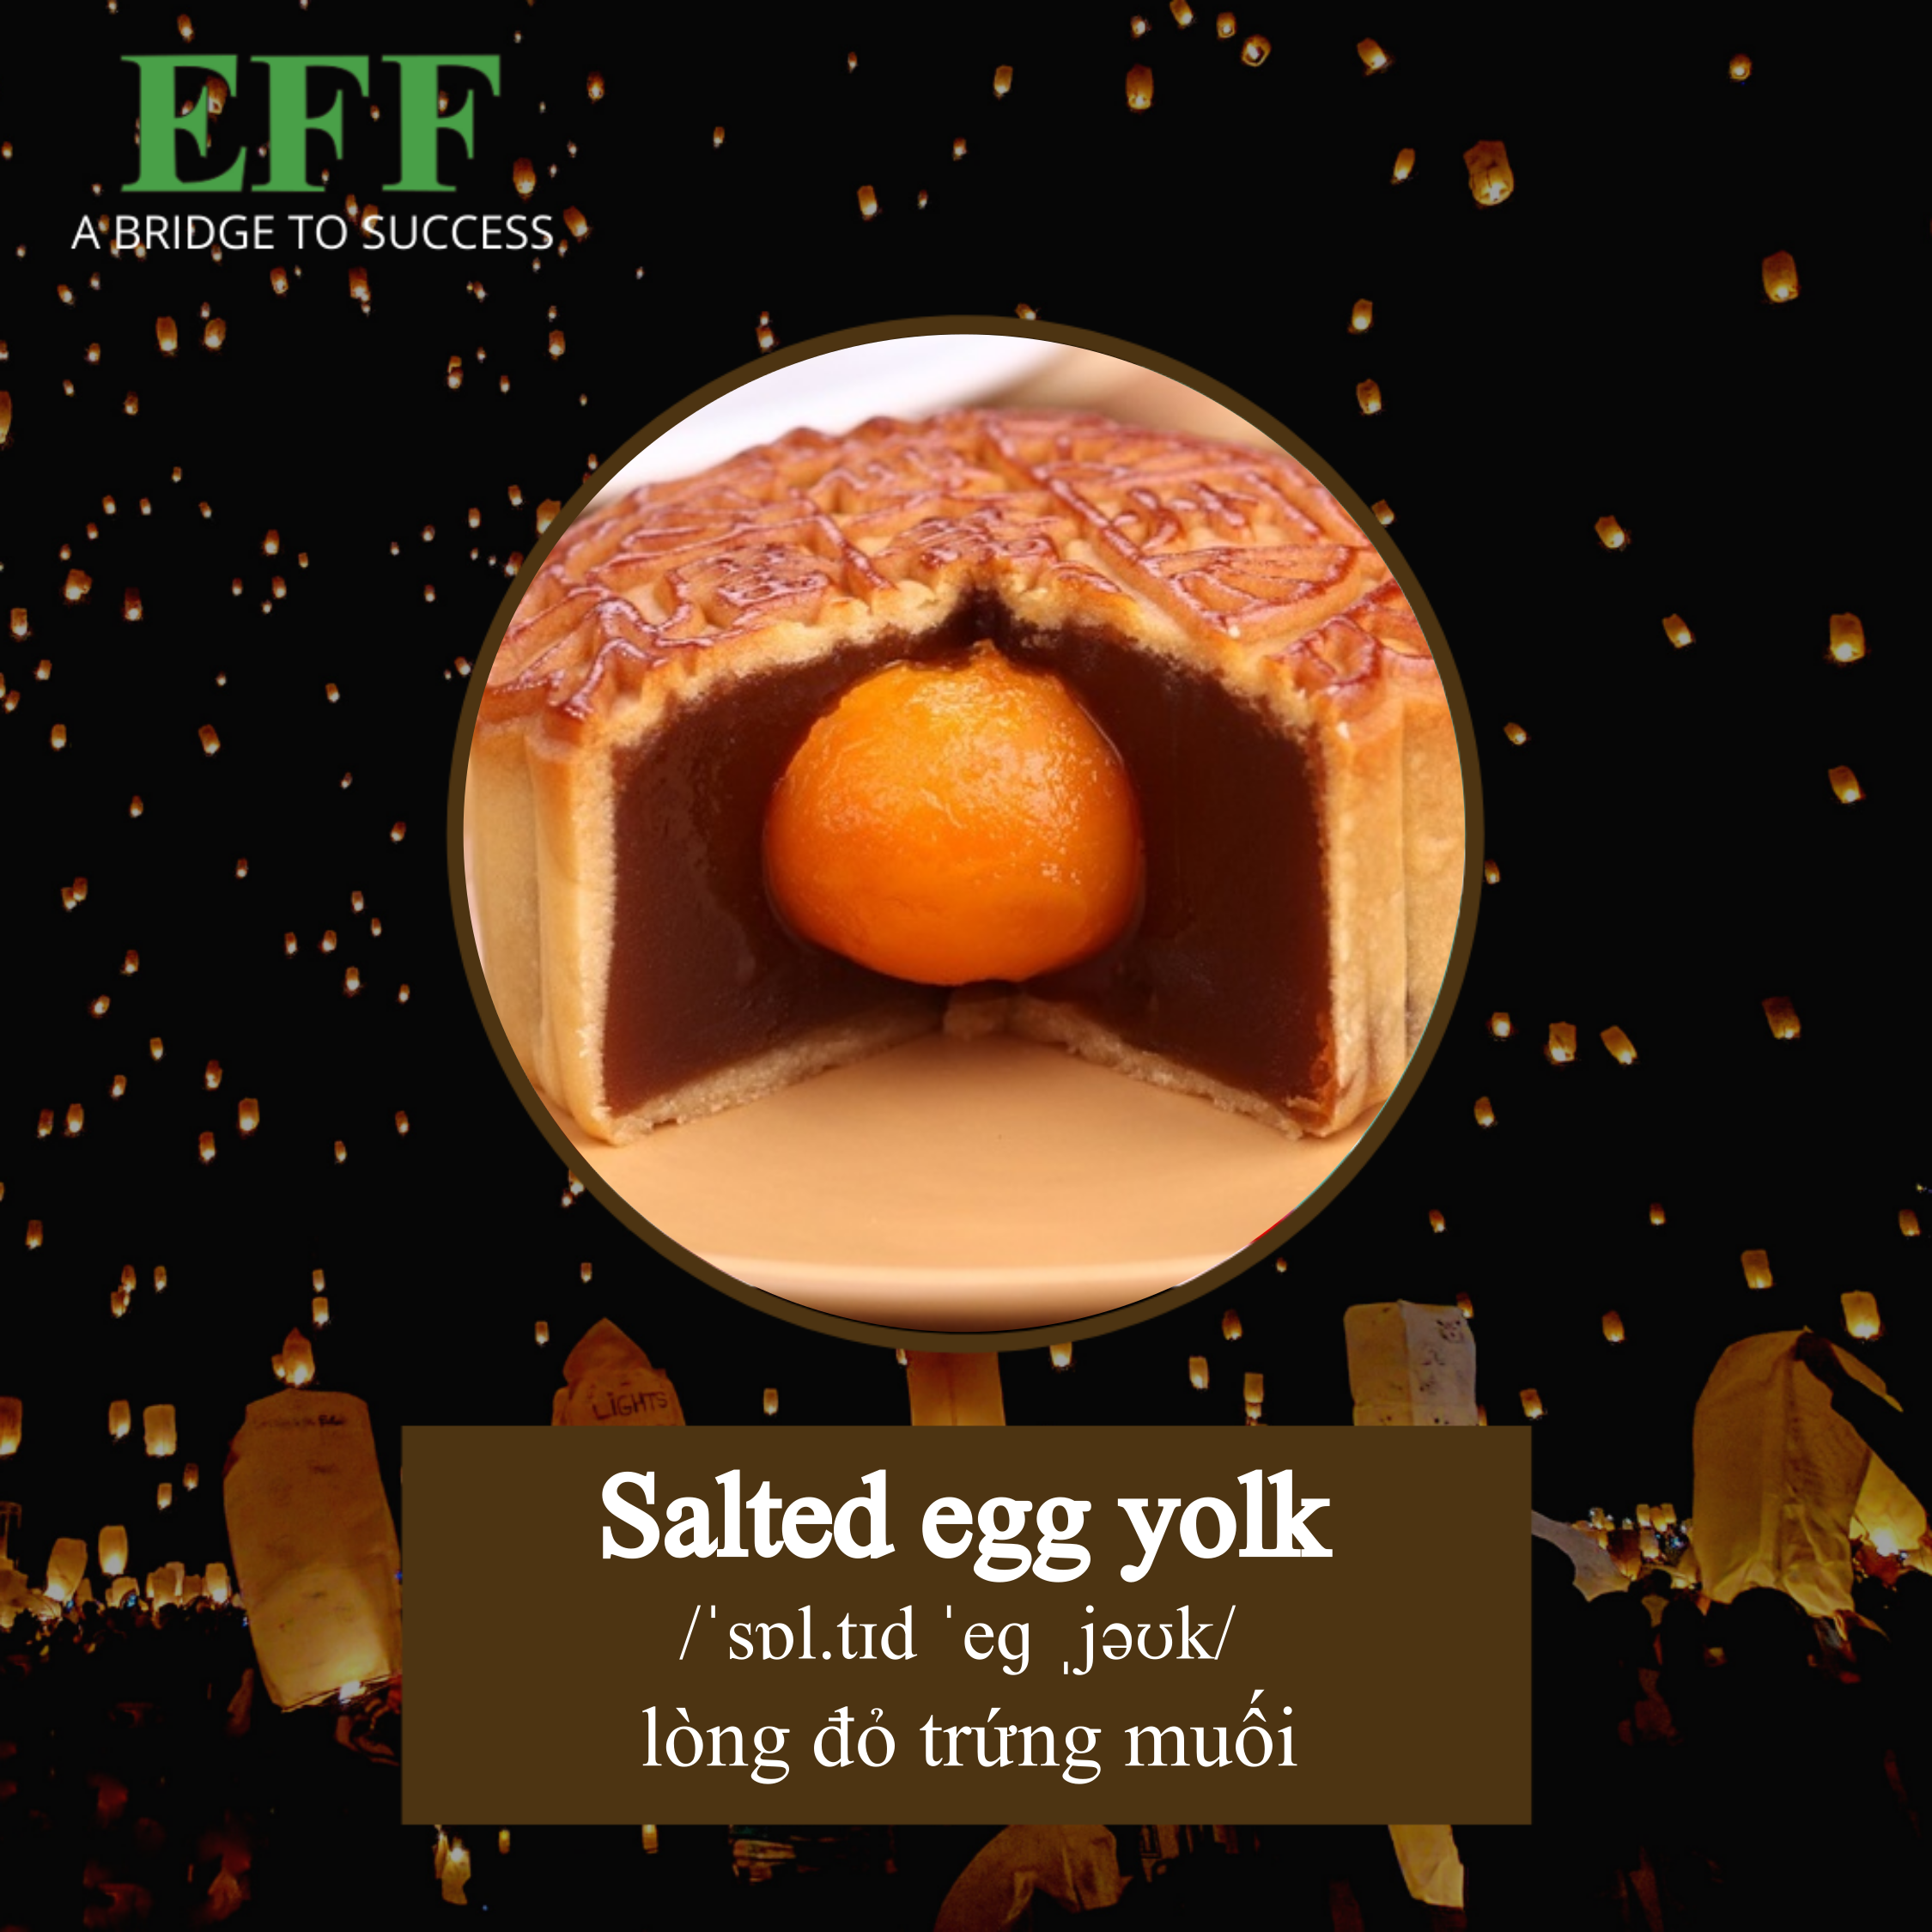 EFF Salted egg yolk